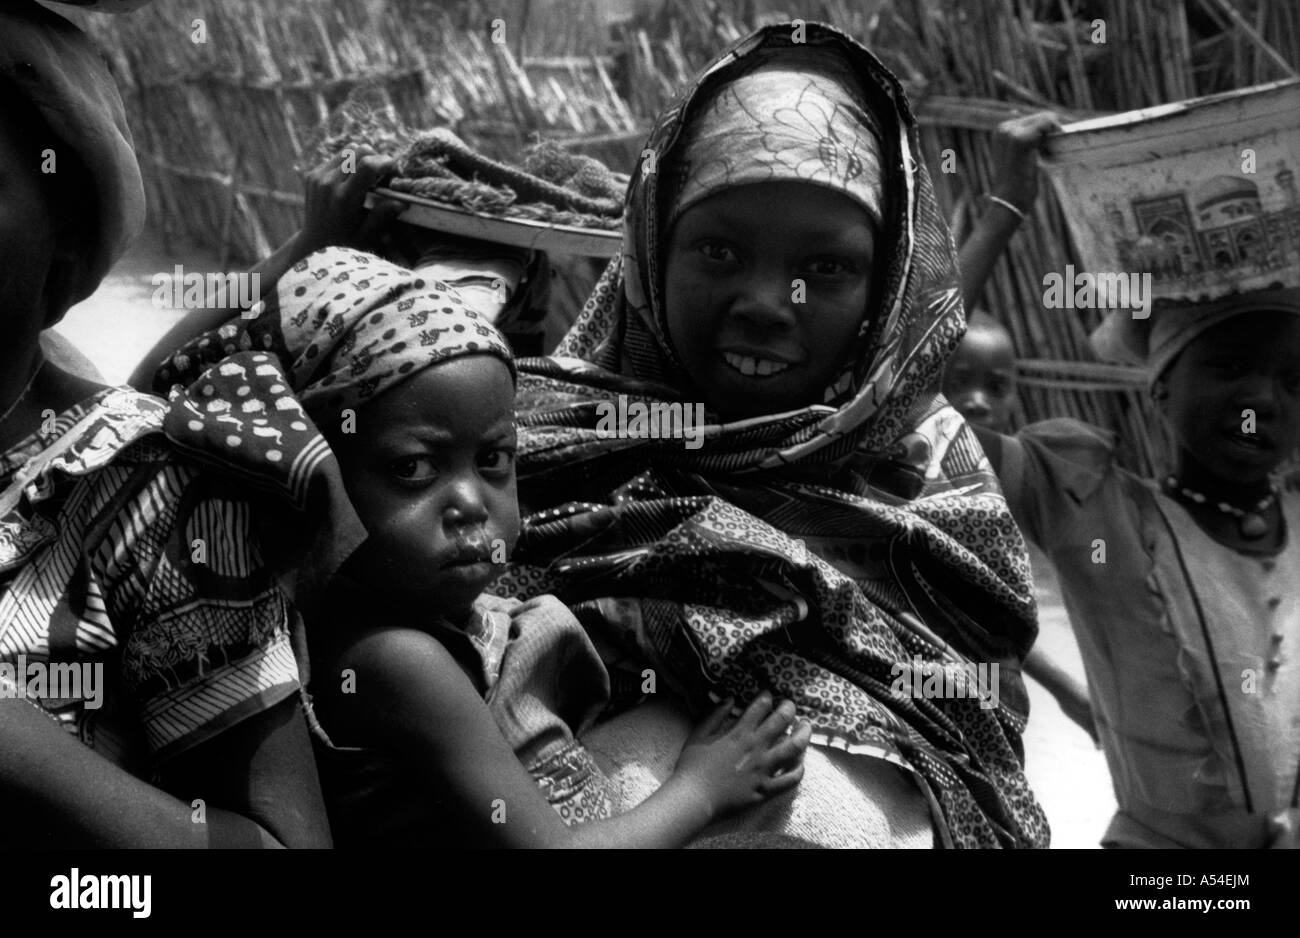 Painet hn2018 706 black and white children bauchi nigeria country developing nation less economically developed - Stock Image